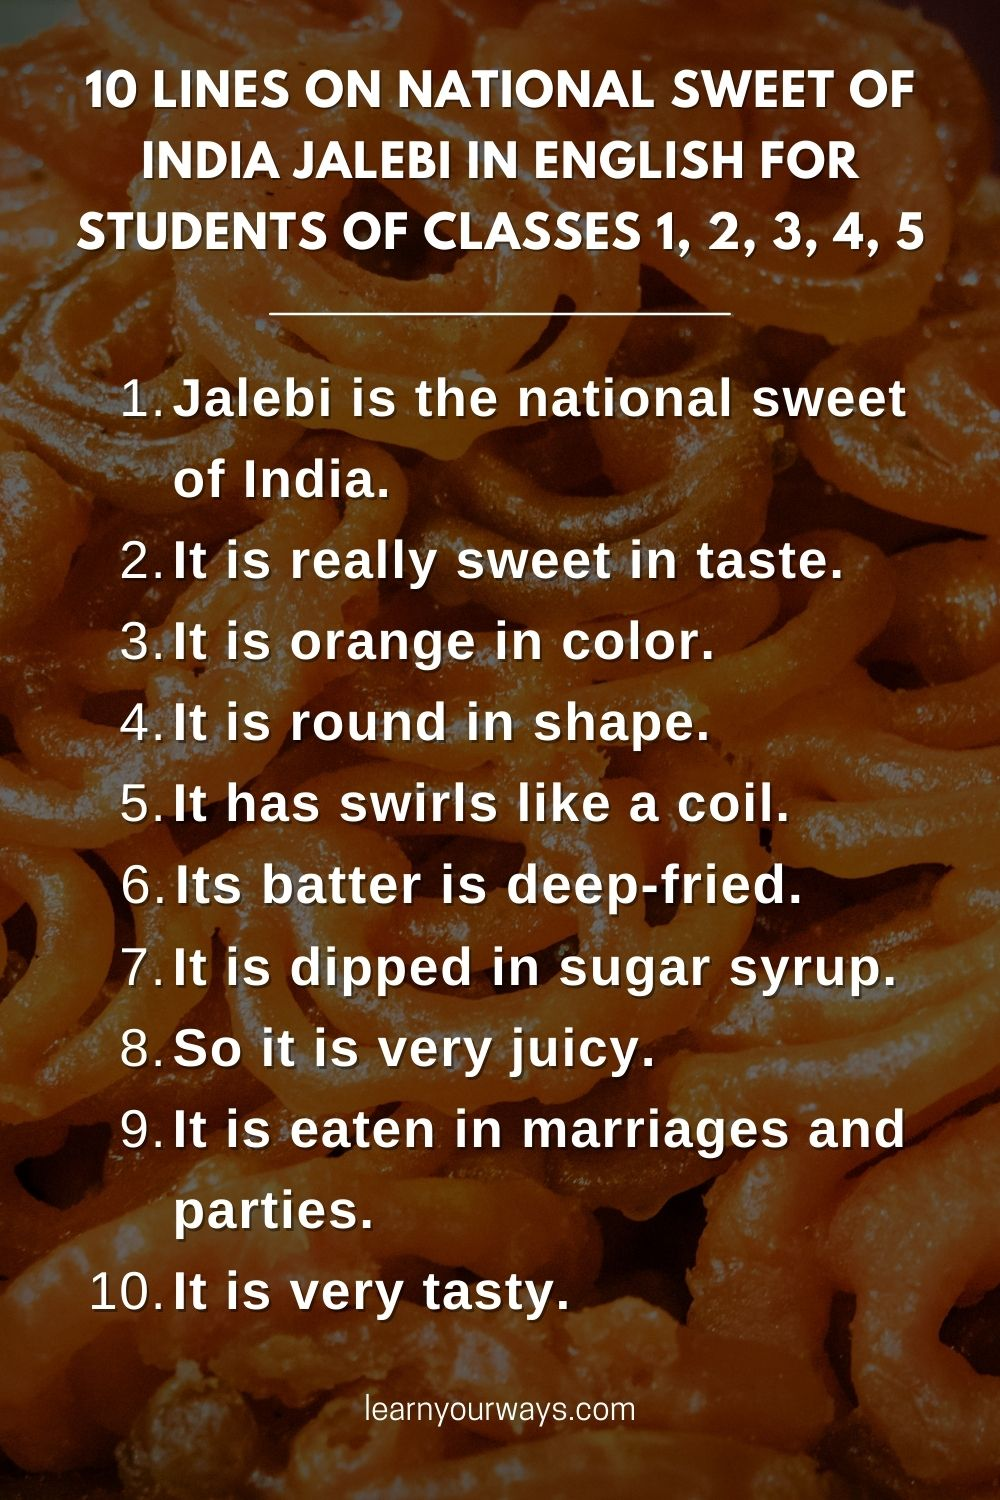 10 lines on National Sweet of India